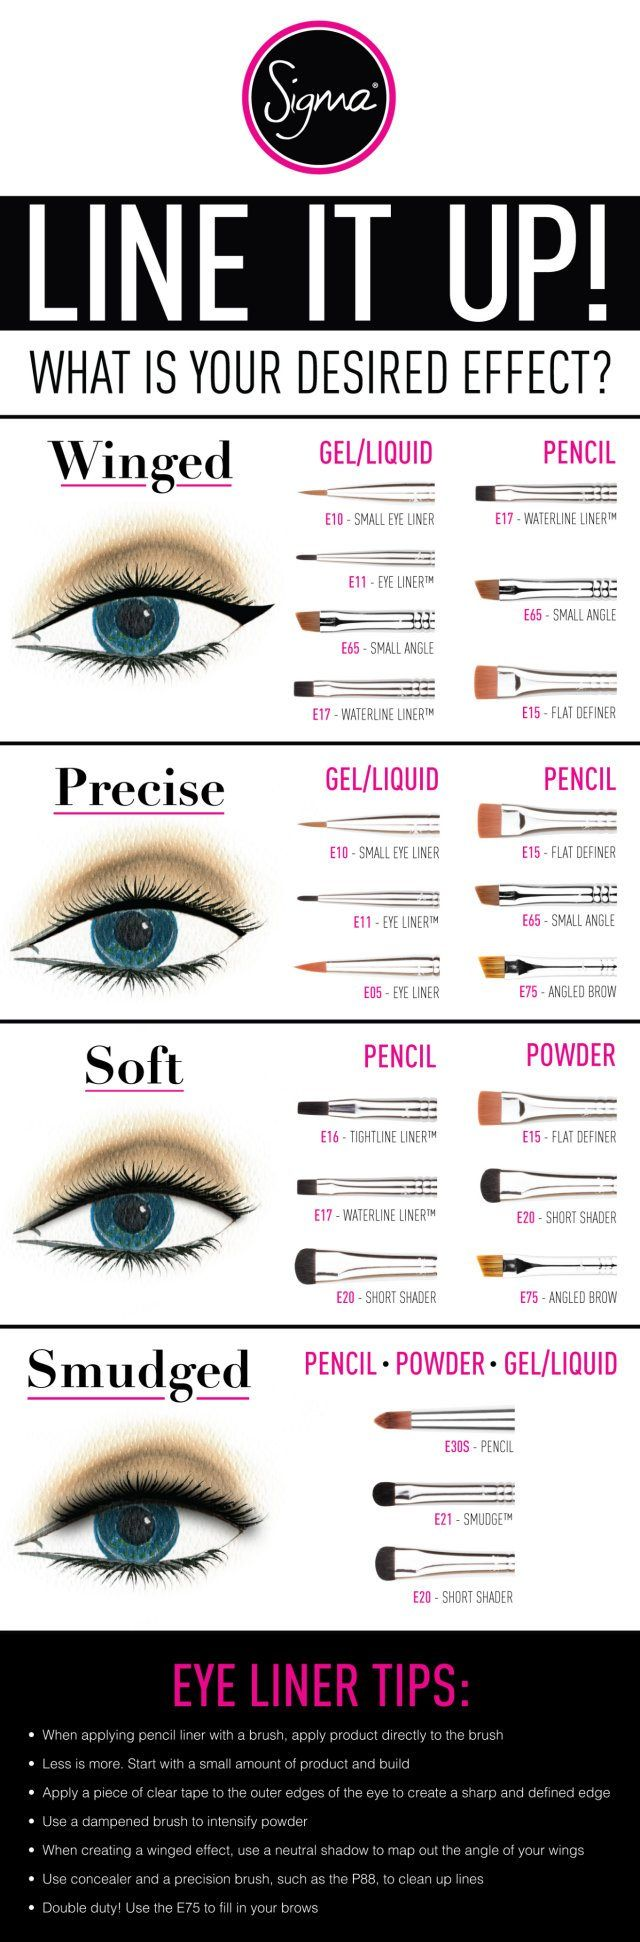 How to Get the Perfect Eyeliner Effect - Glossy Blonde